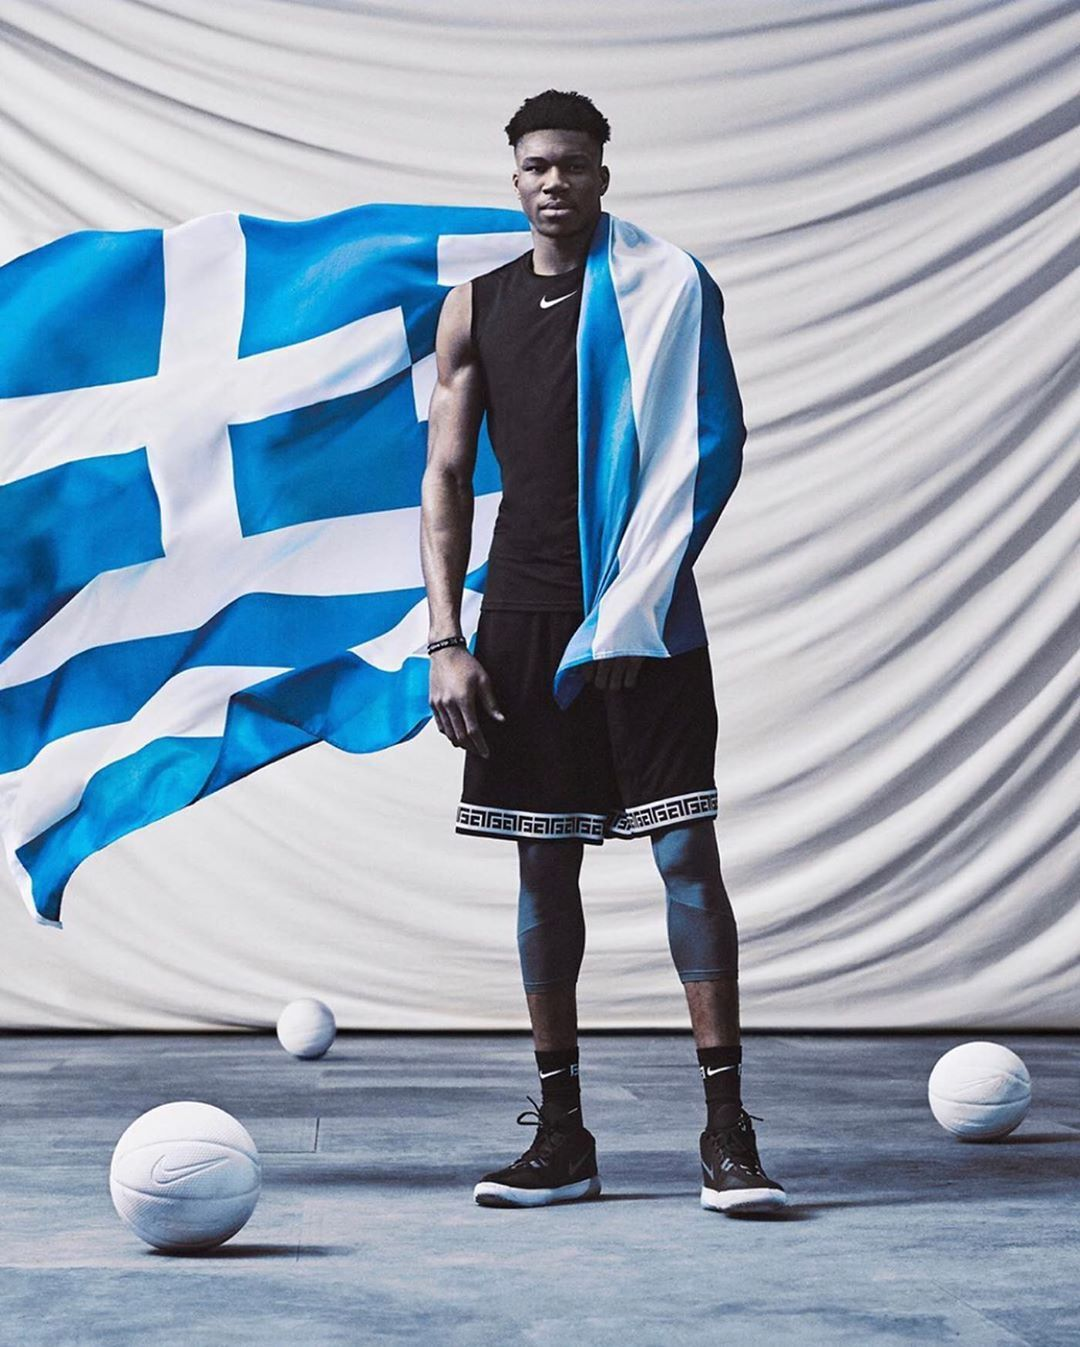 Greece On Instagram Nba Mvp Giannis Antetokounmpo Has His First Signature Shoe By Nike Coming July 1st C Nba Mvp Giannis Antetokounmpo Wallpaper Nba Pictures